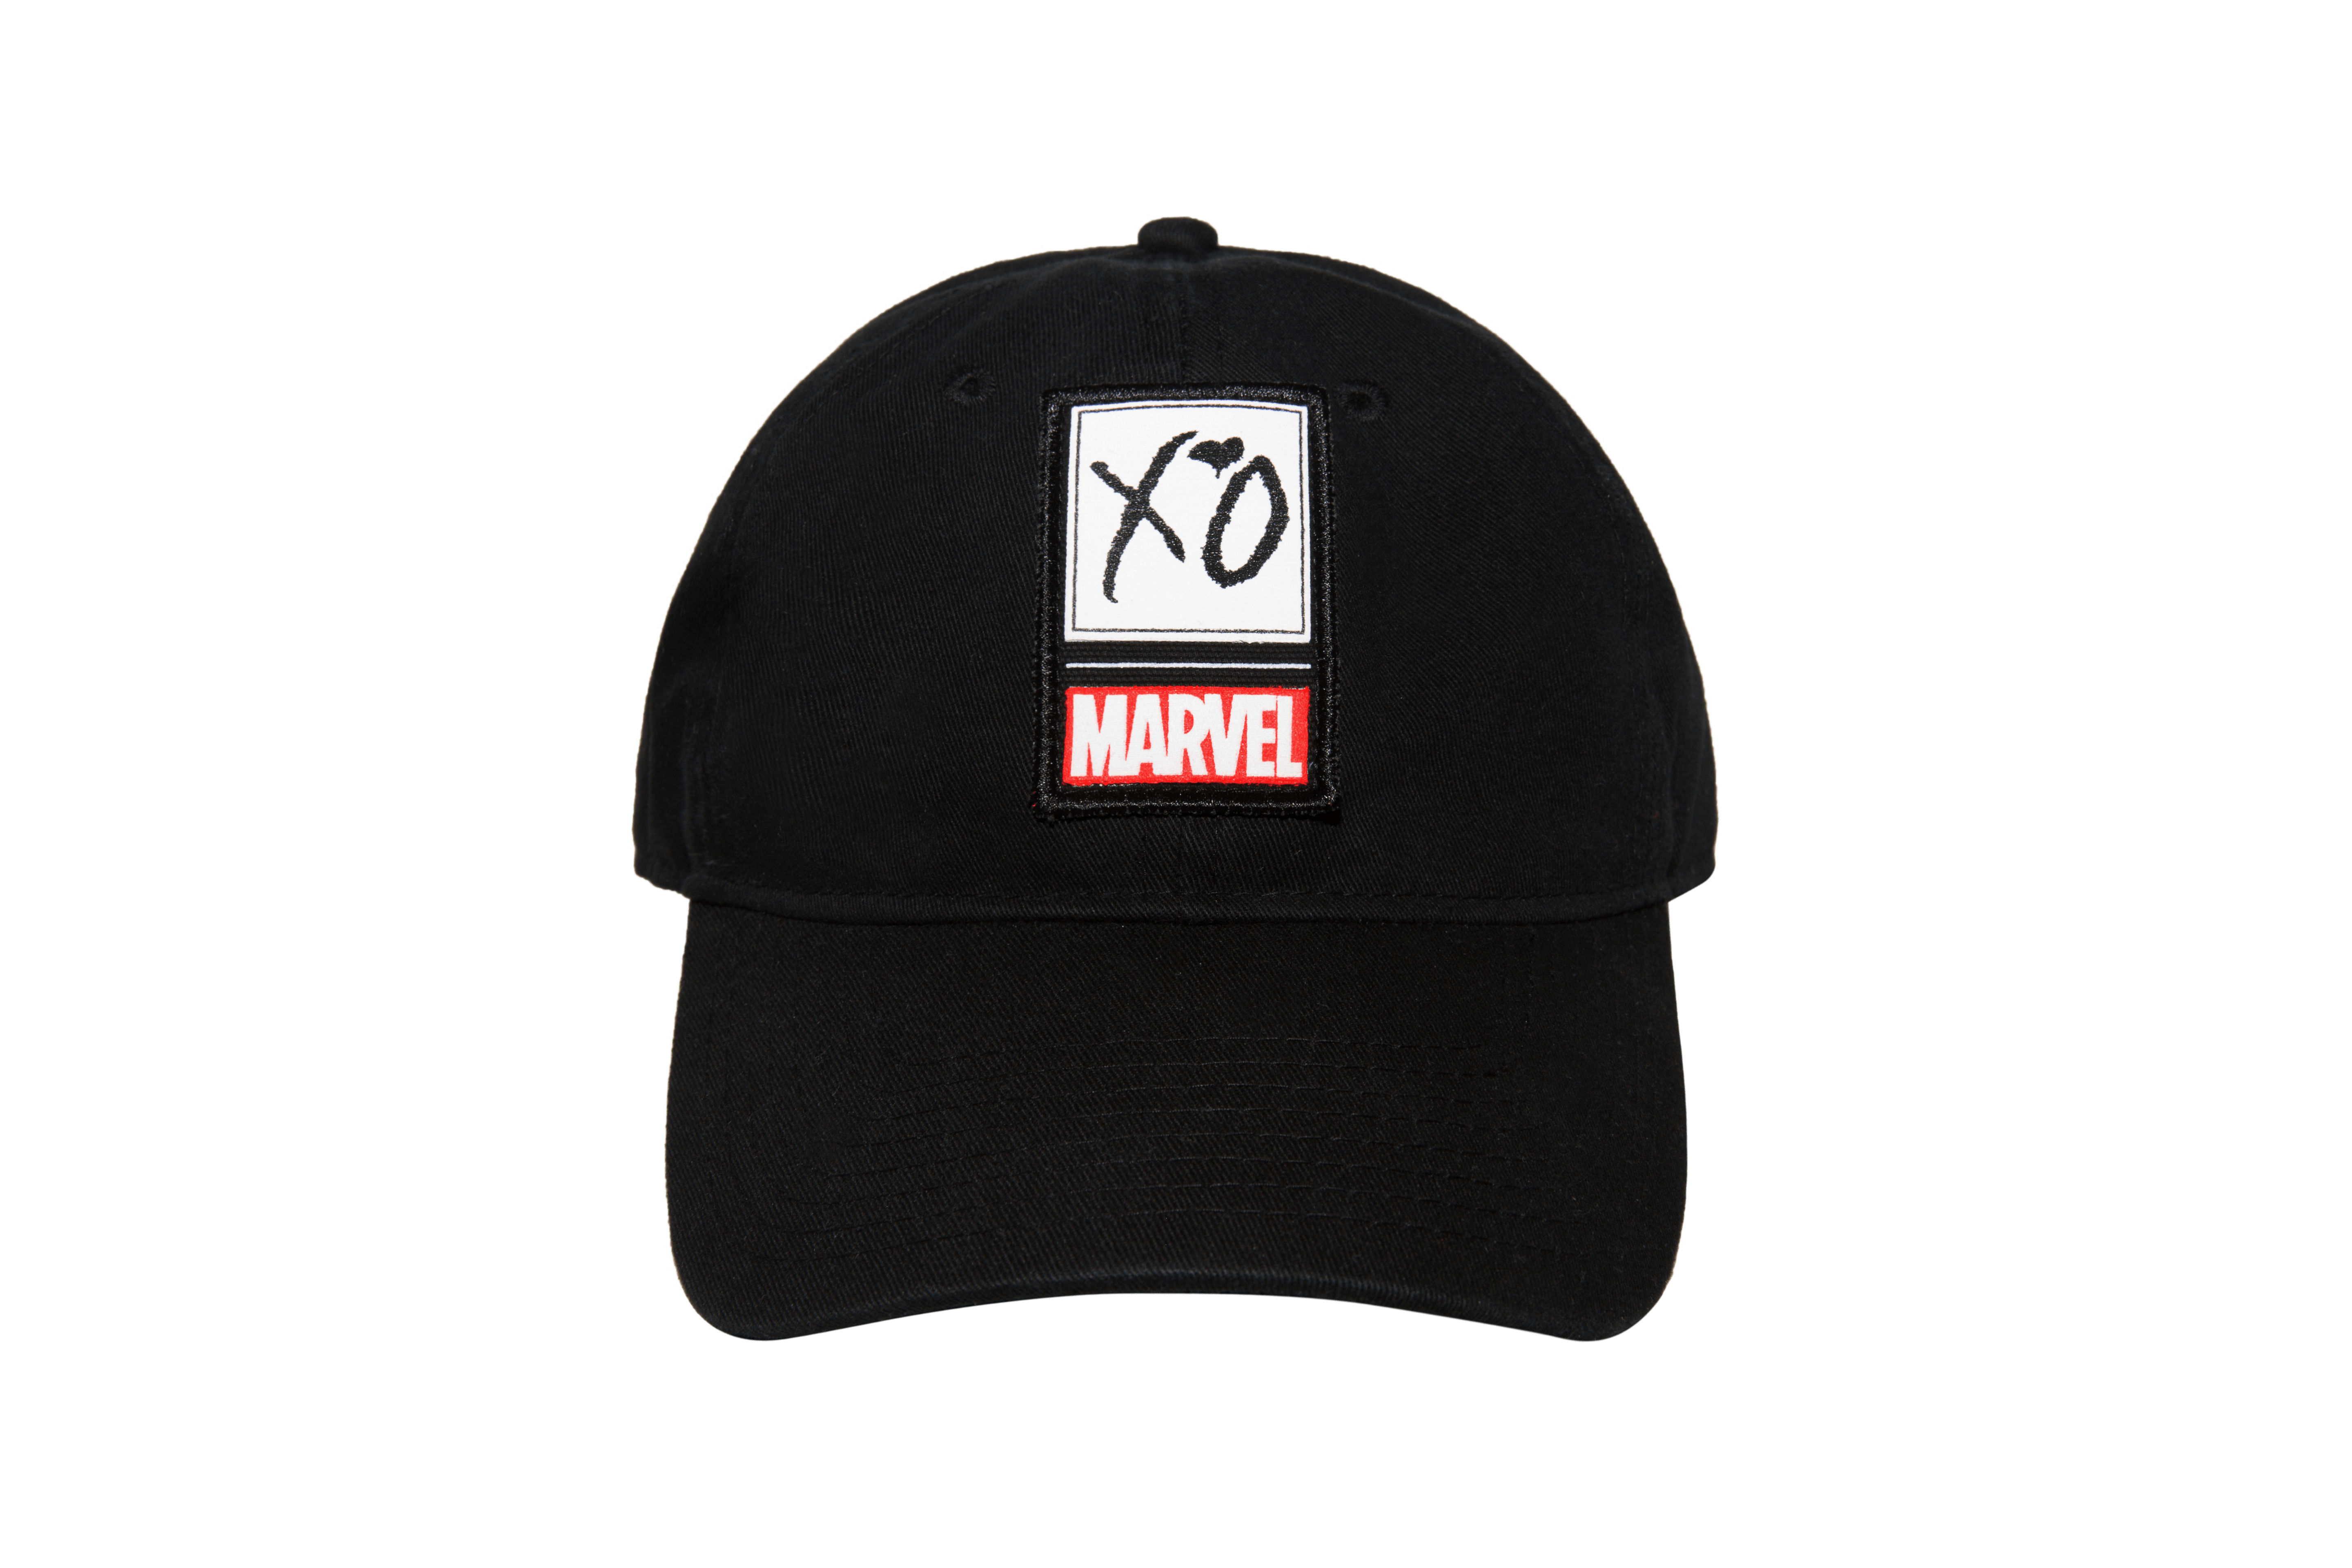 XO Marvel Logo Sports Cap Shot 1